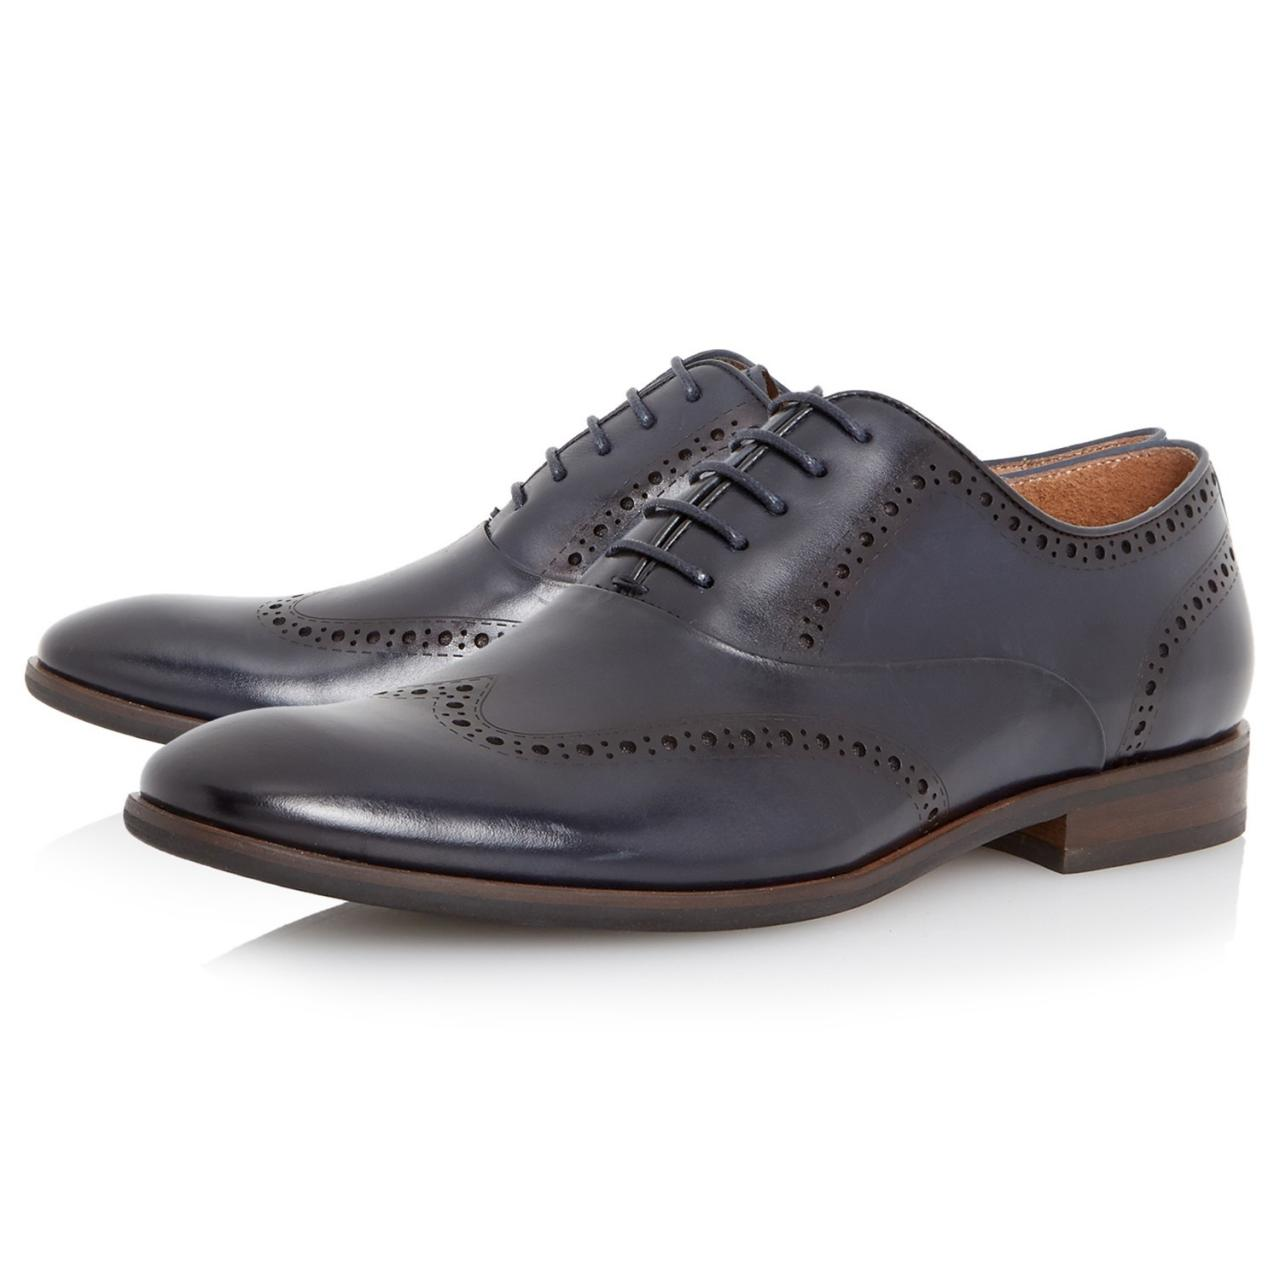 Oxford Brogue Punch Hole Style Navy Blue Color Leather Laceup Shoes